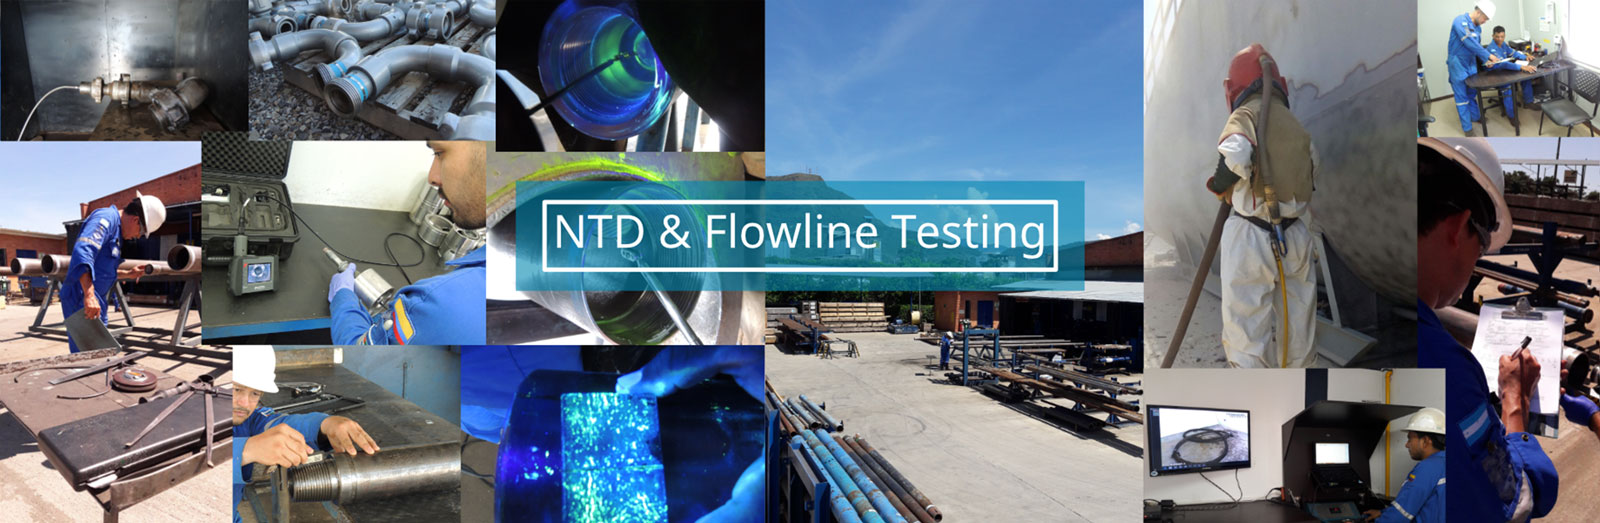 Total QC S.A.S. - NDT & Flowline Testing